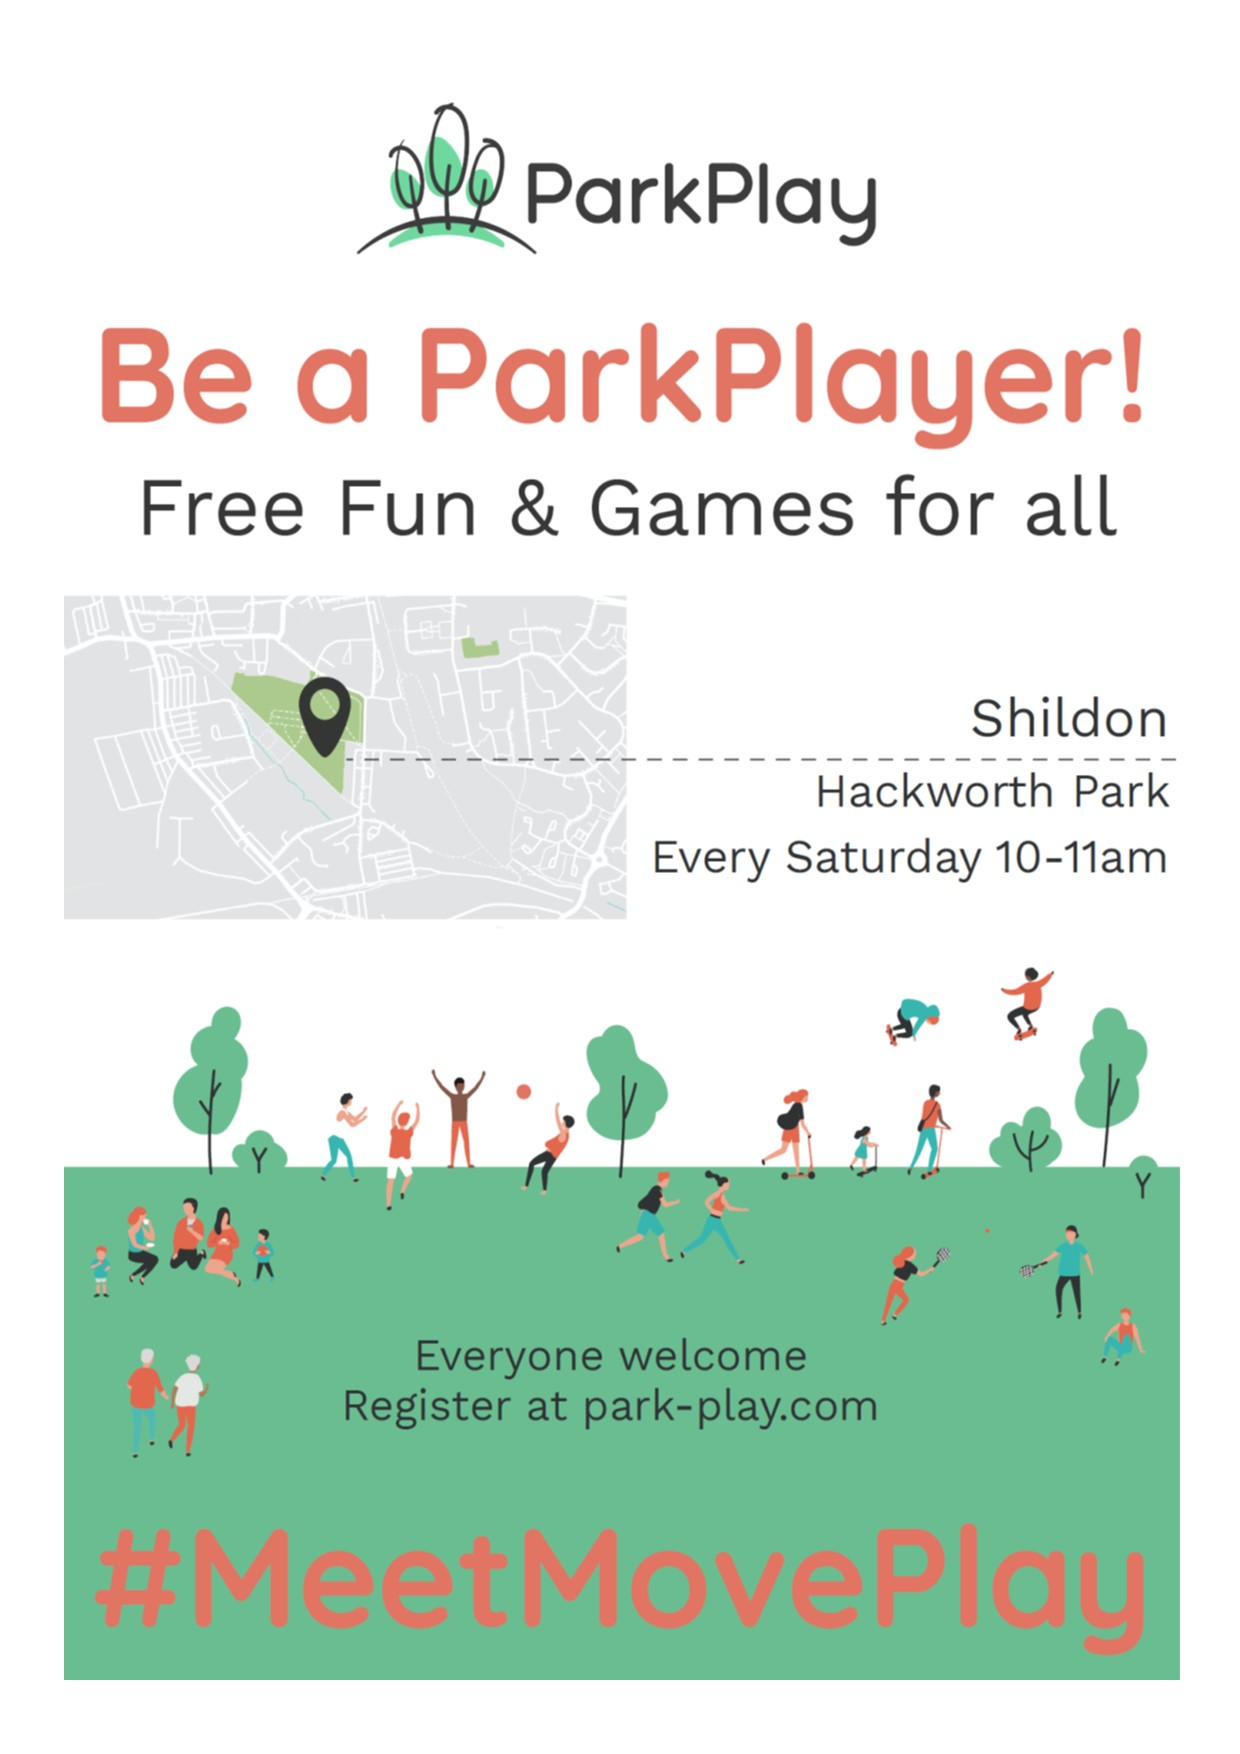 Poster to be a ParkPlayer